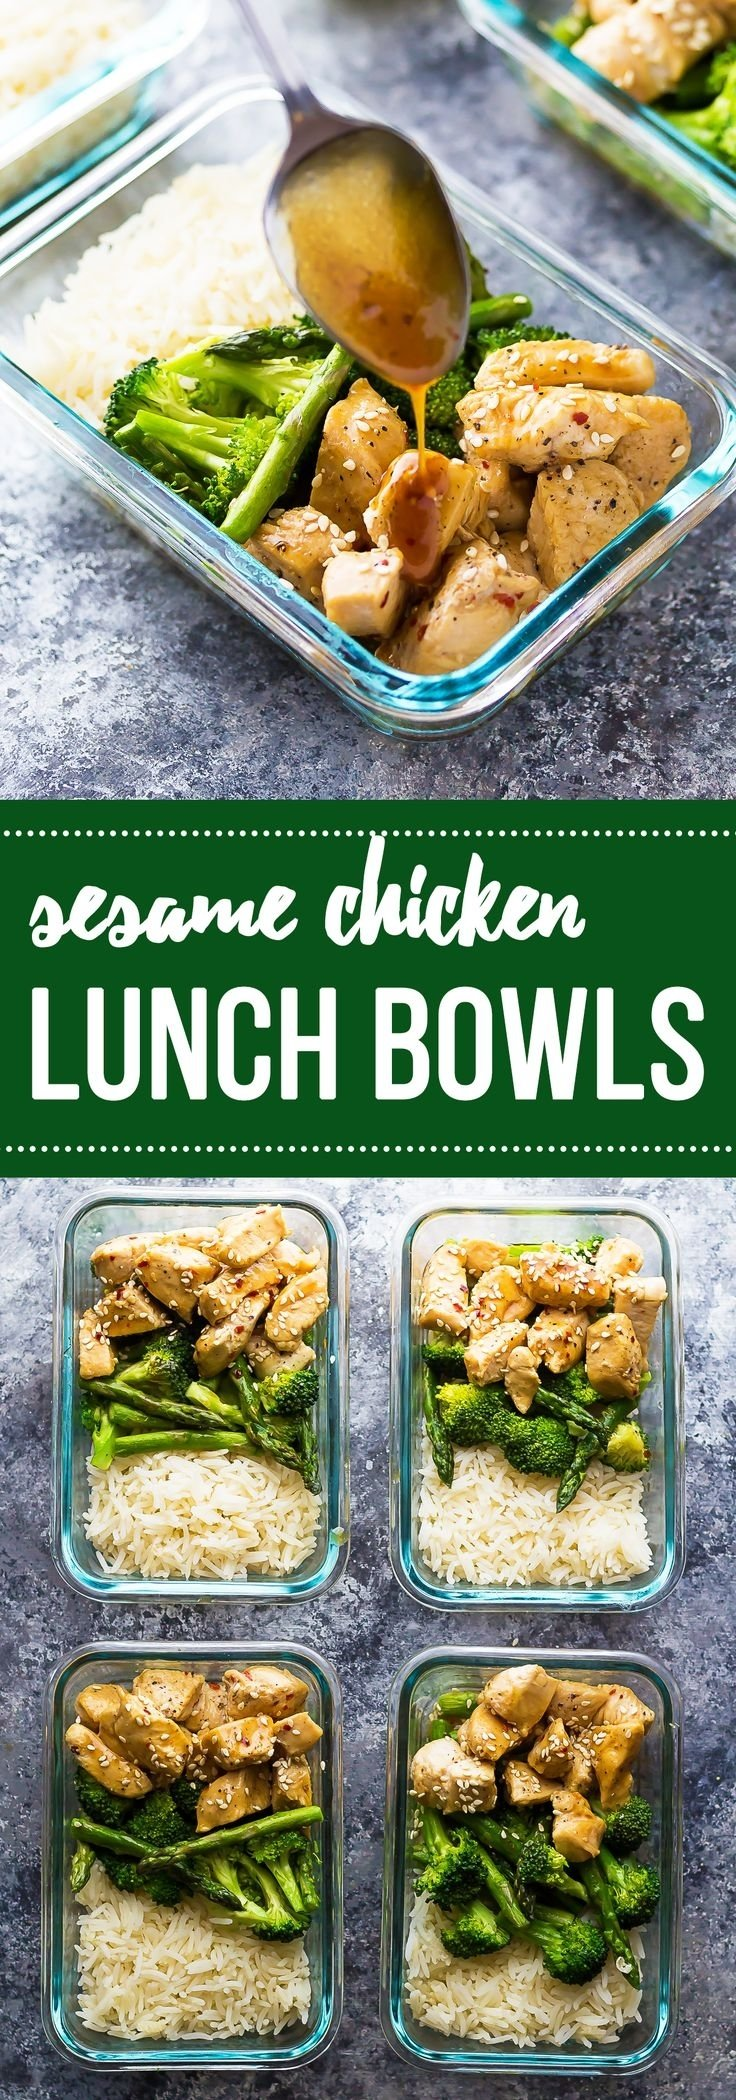 10 Stylish Food Day Ideas For Work 1013 best kids meal ideas images on pinterest 9 2020